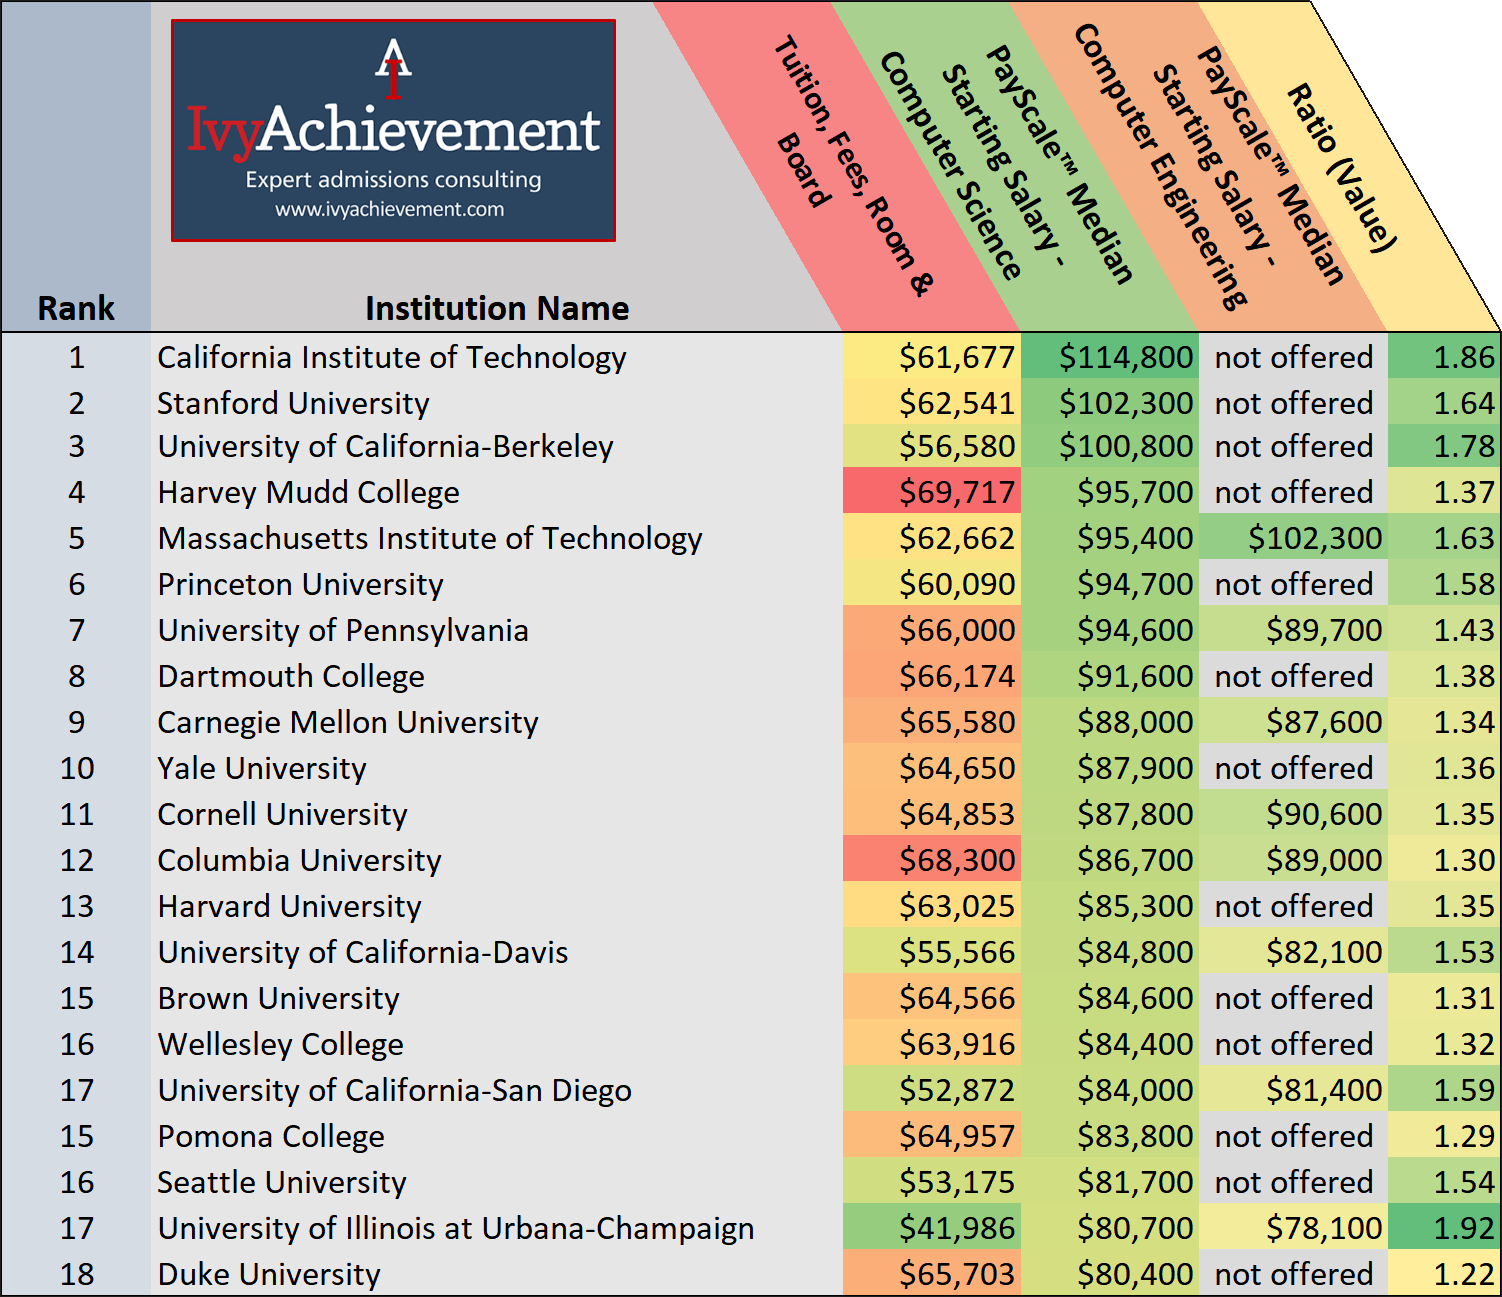 IvyAchievement Computer Science Employment Top Salaries copy